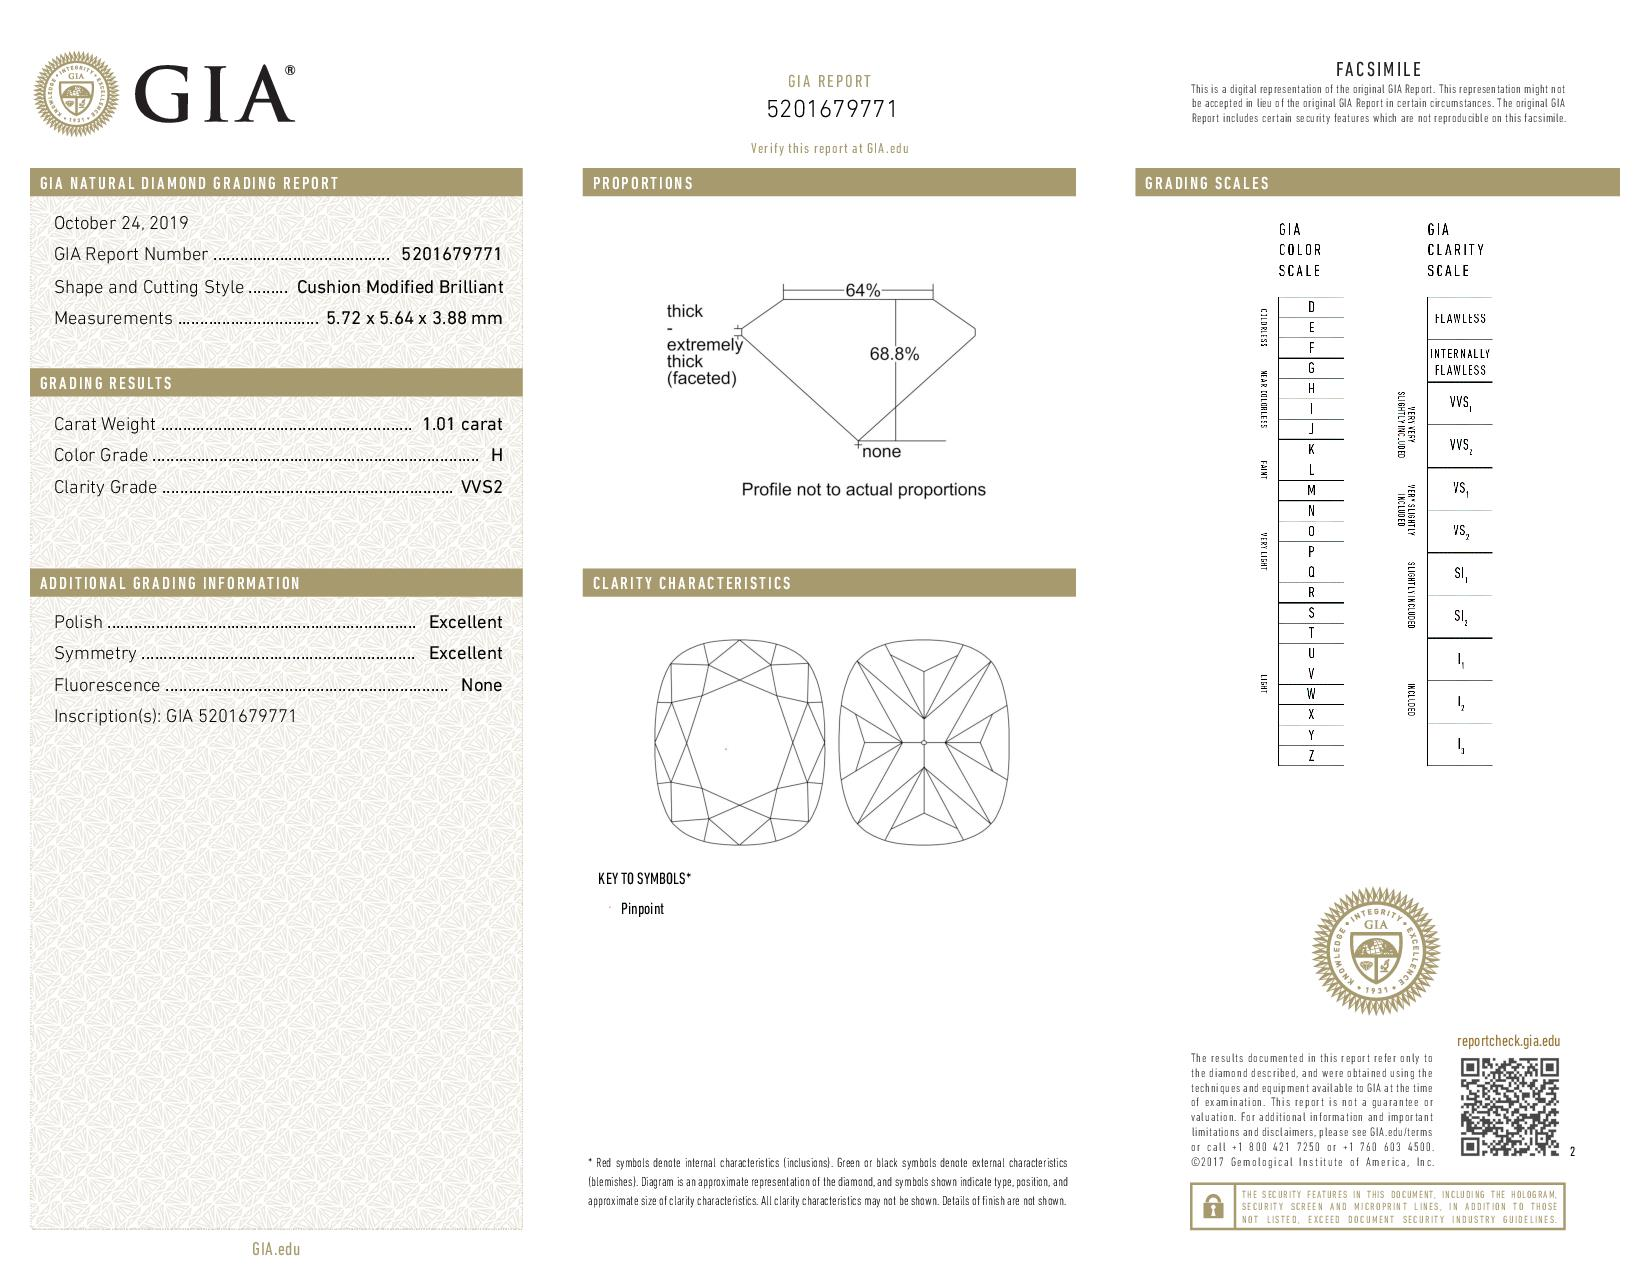 This is a 1.01 carat cushion shape, H color, VVS2 clarity natural diamond accompanied by a GIA grading report.